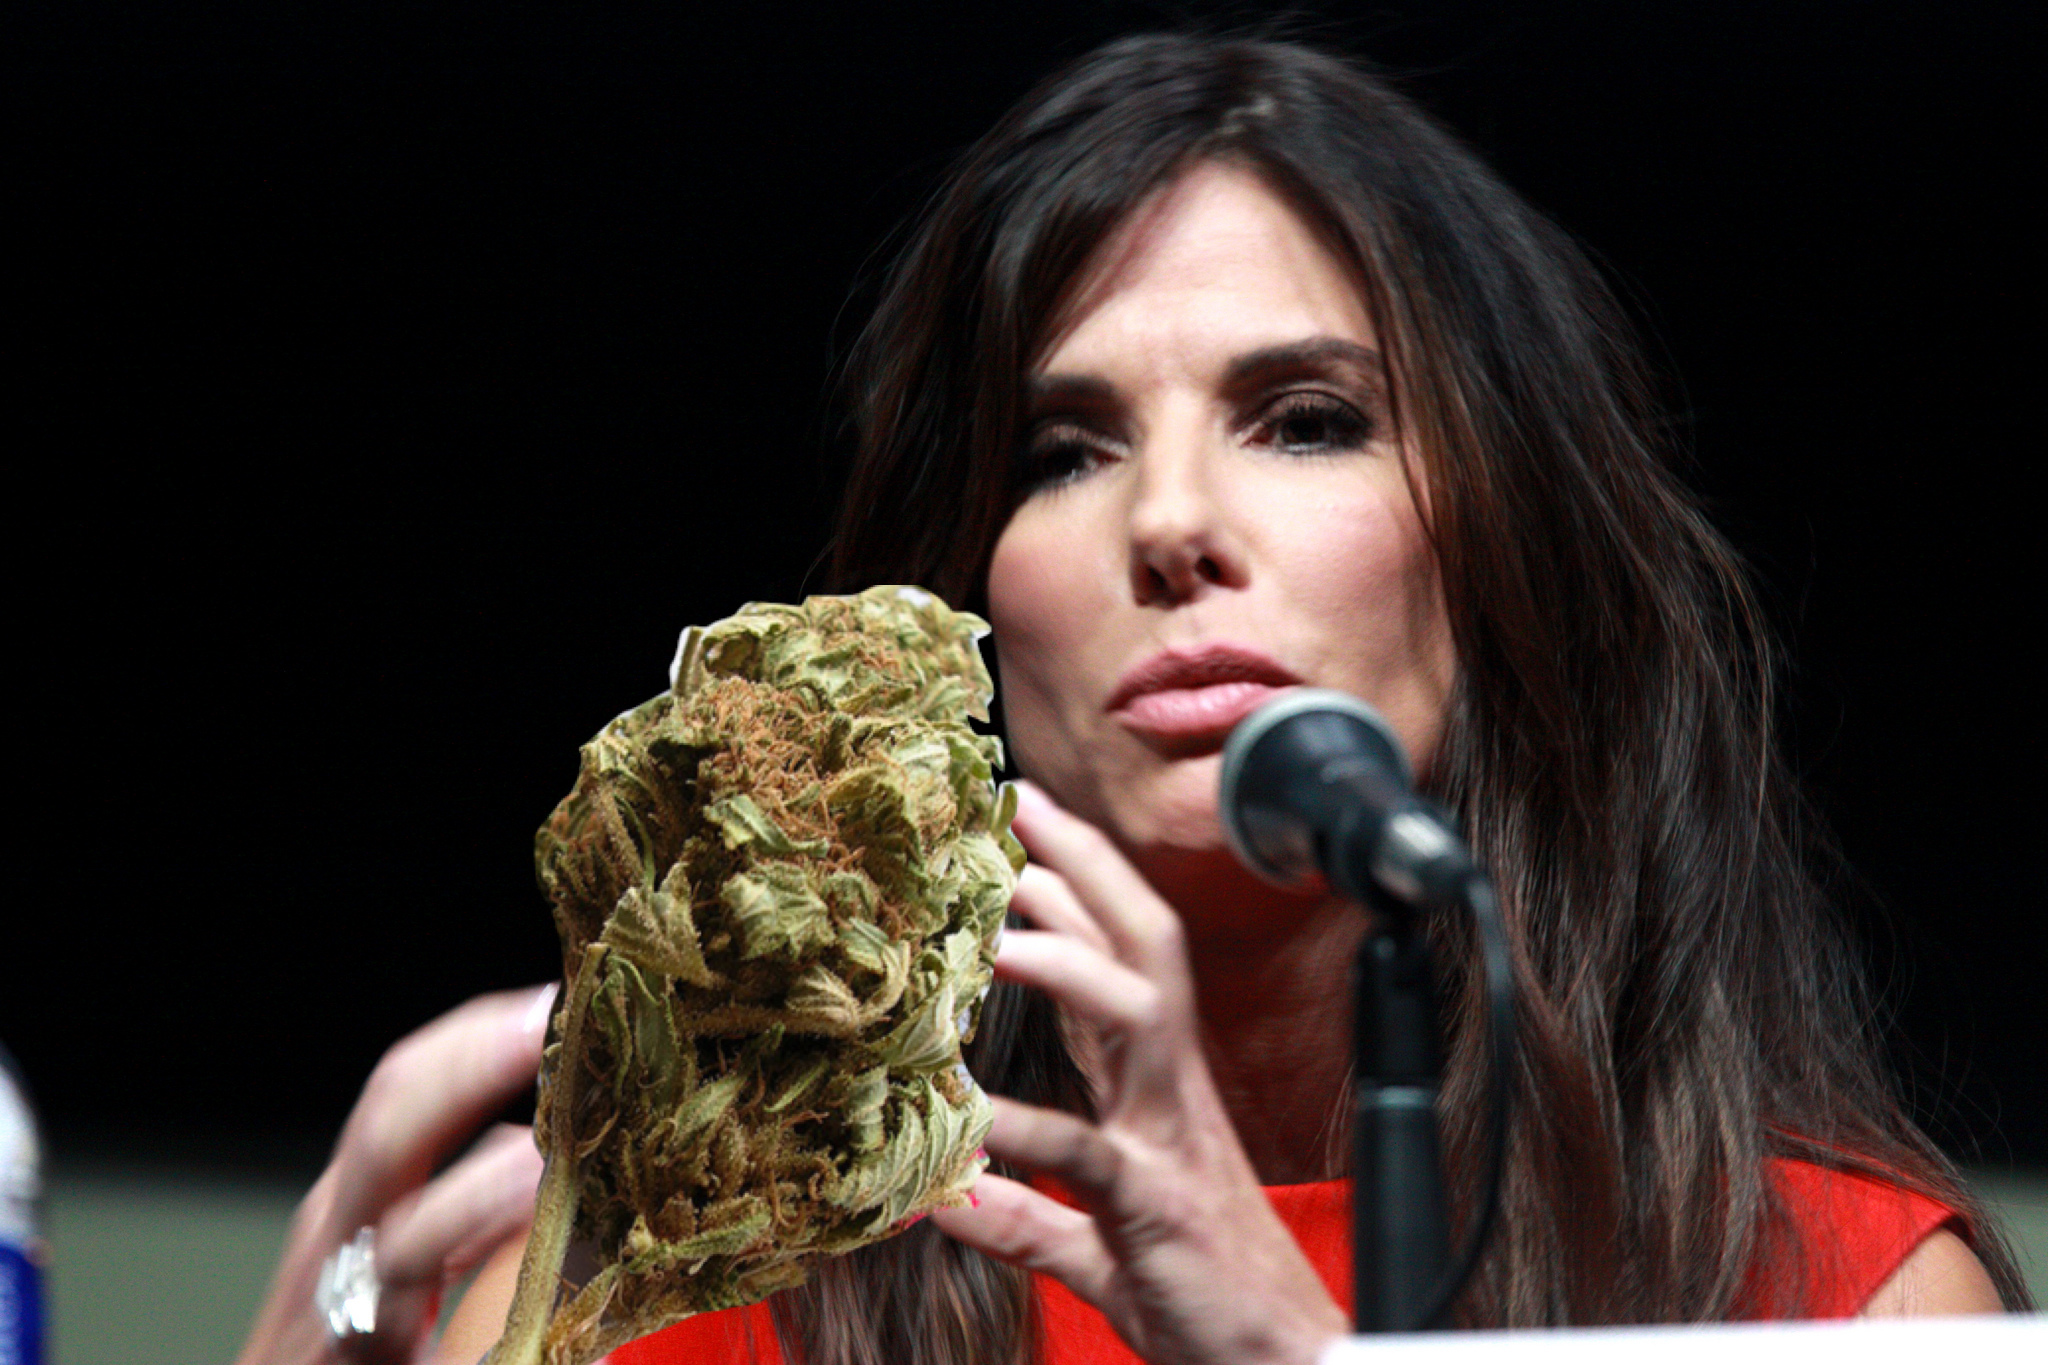 Fifteen Sandra Bullock Movies As Names For Weed Strains, Ranked